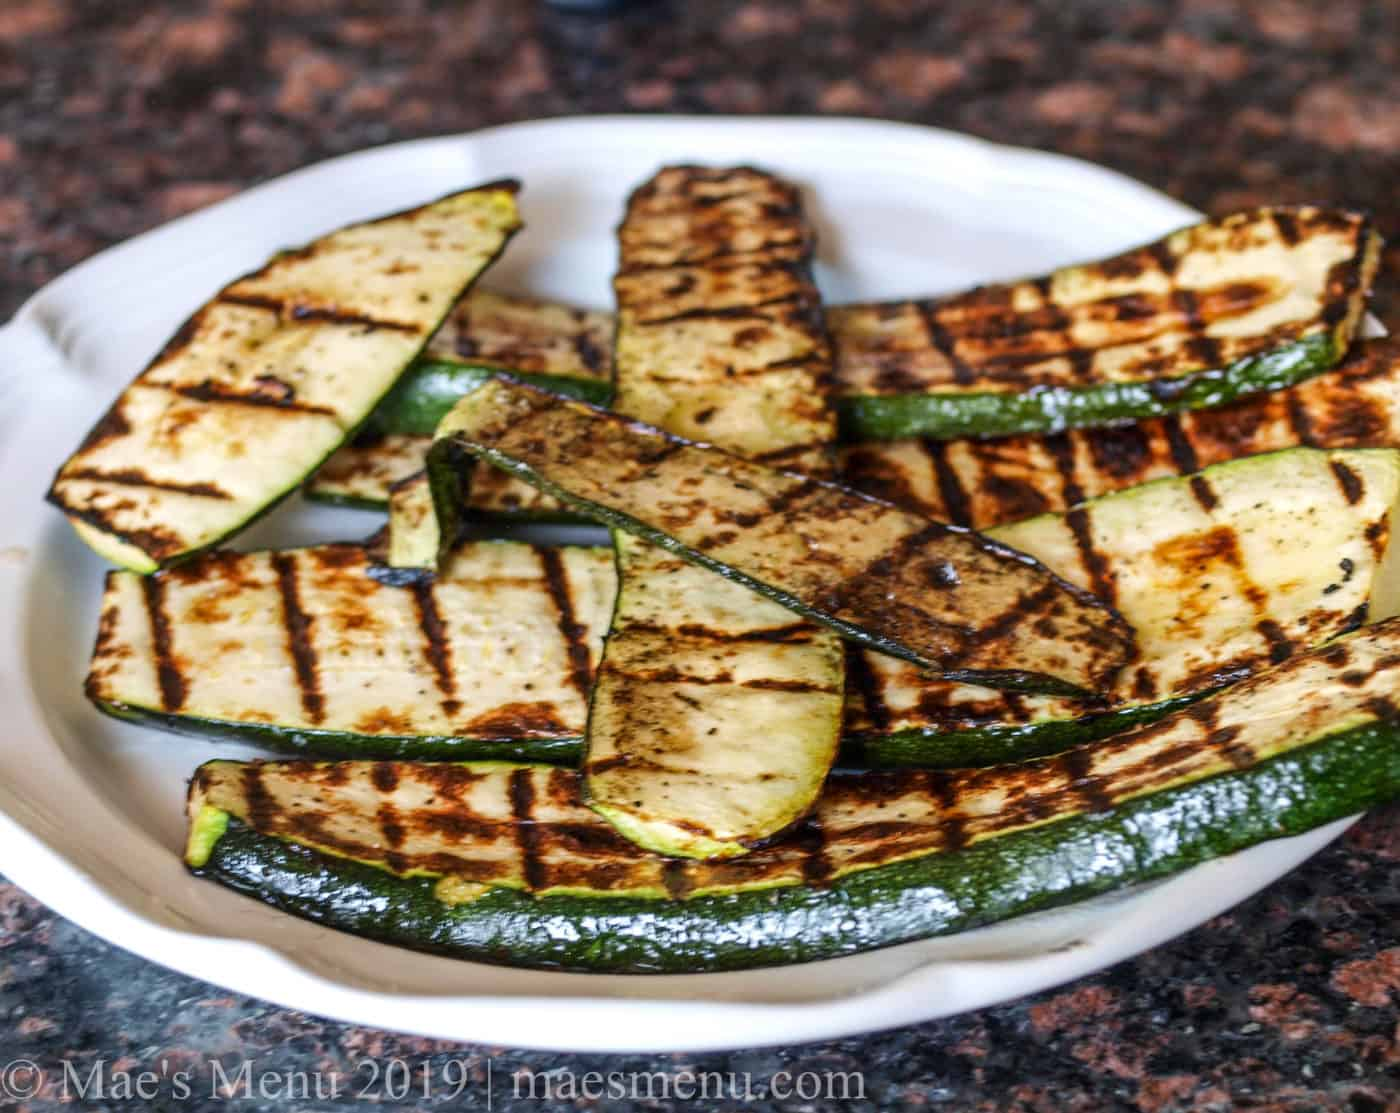 Plate of grilled zucchini.